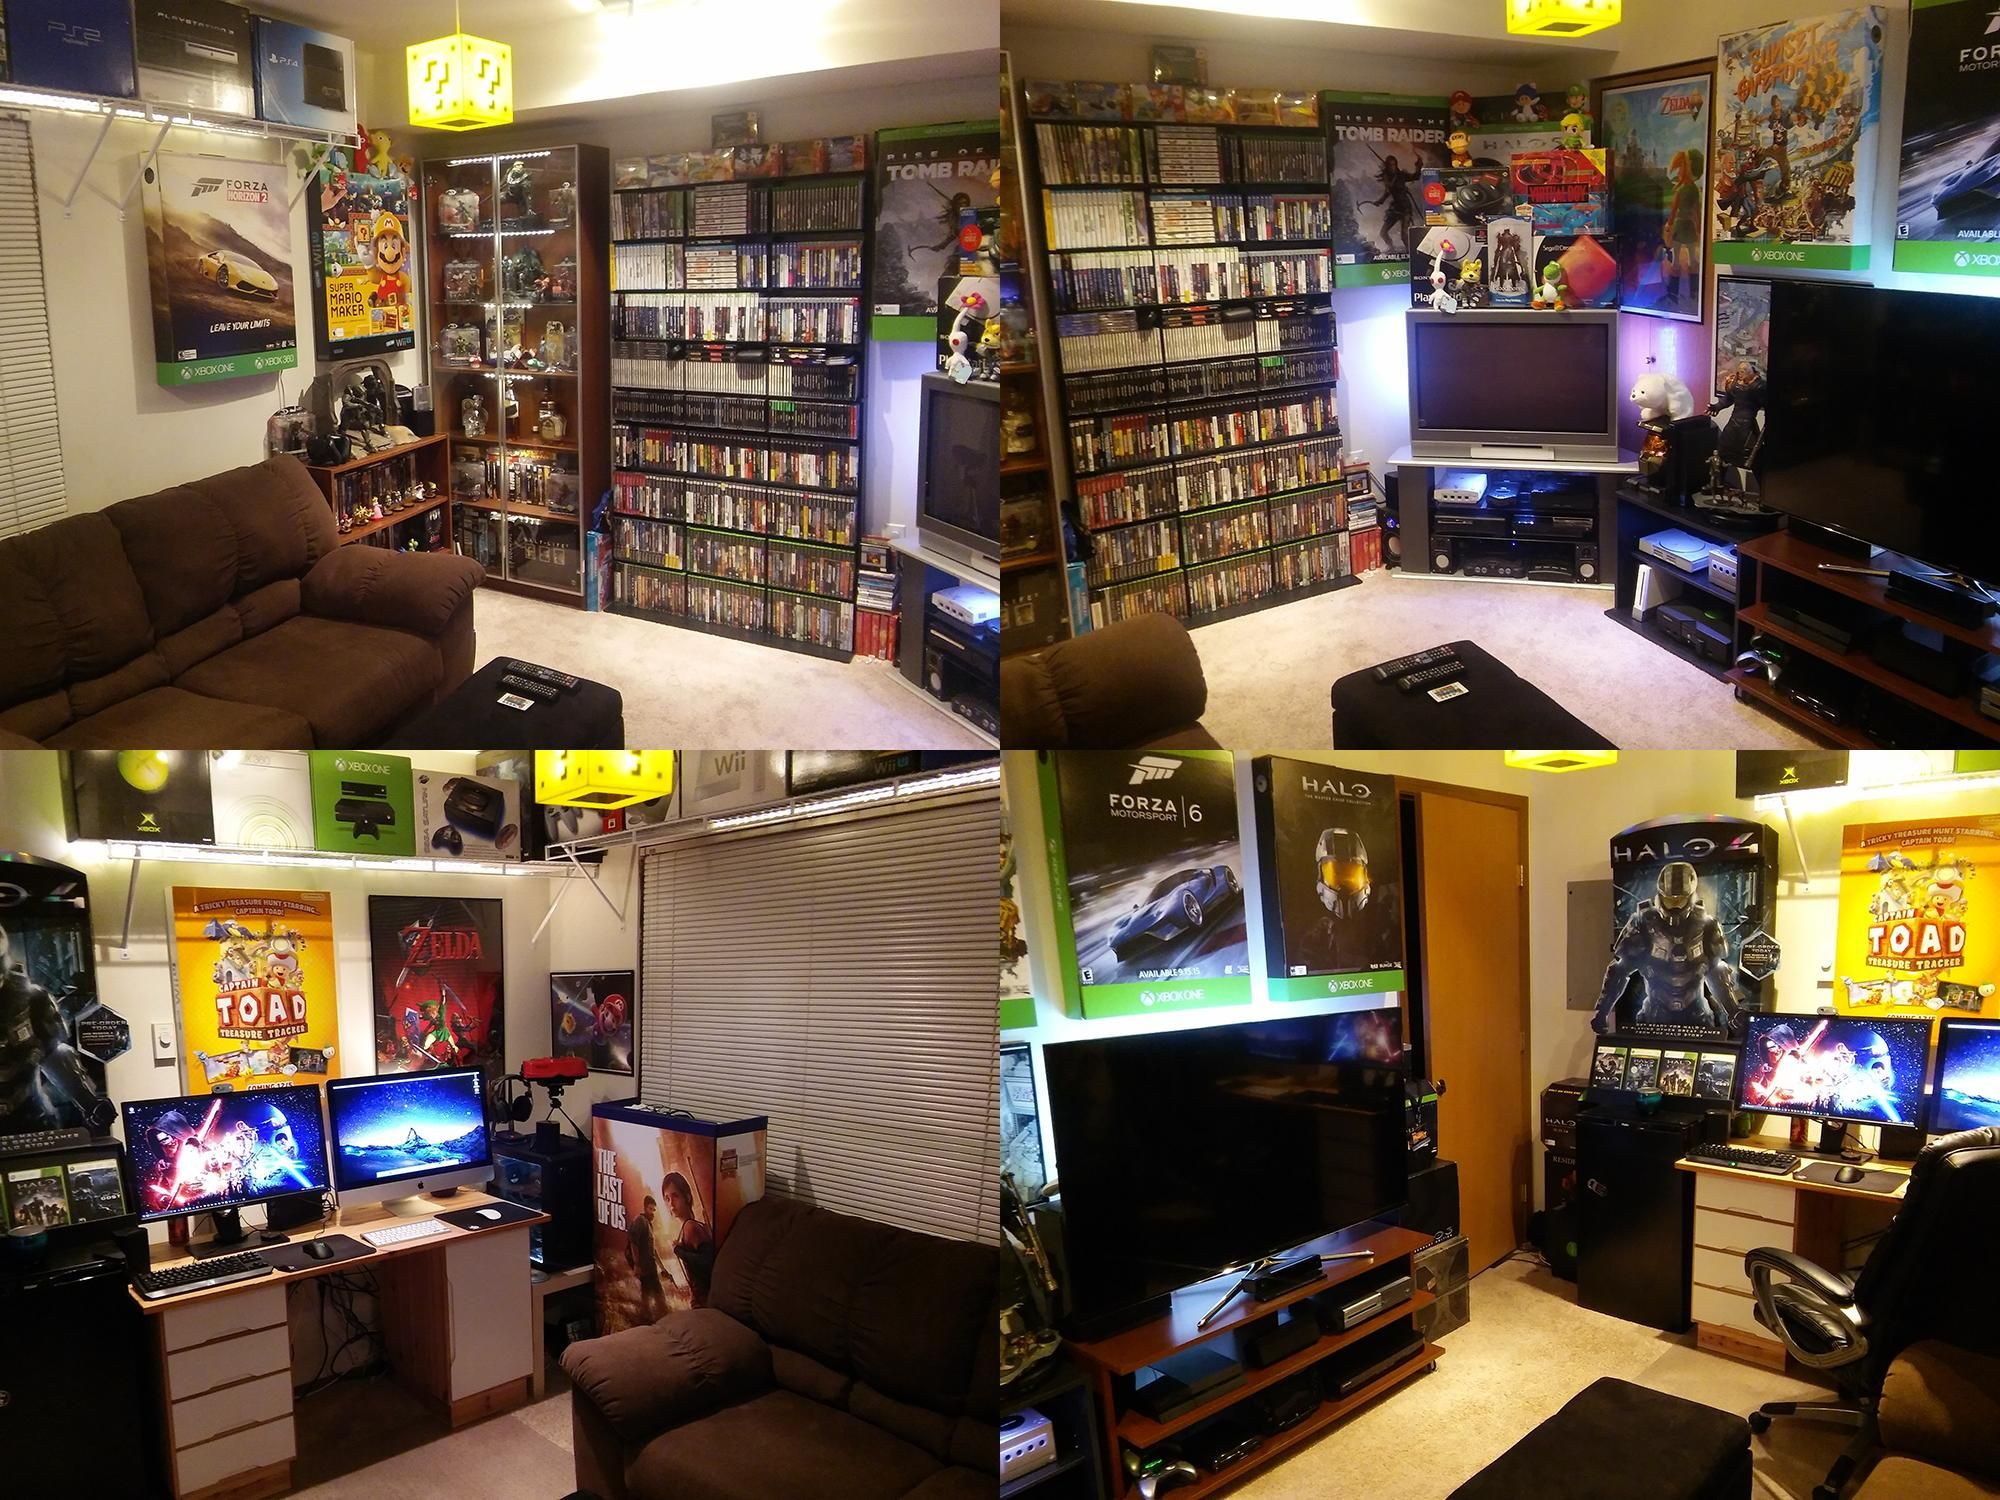 Where Do I Battle Imgurvia Reddit Battlestations Gameroom Ideasgamer